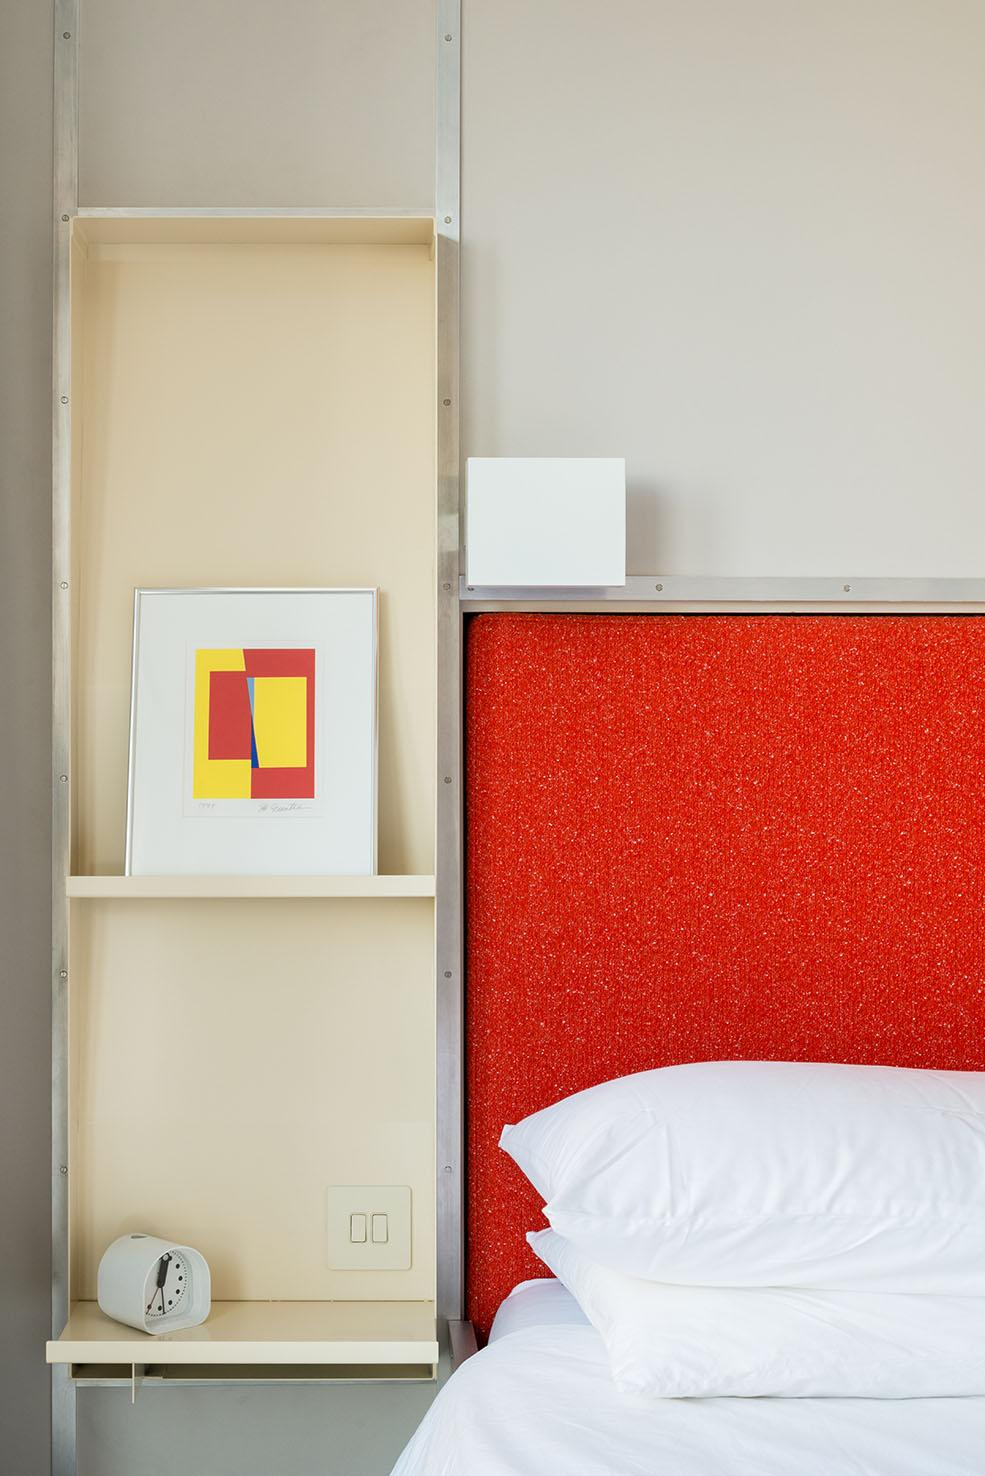 Bedroom in the Barbican